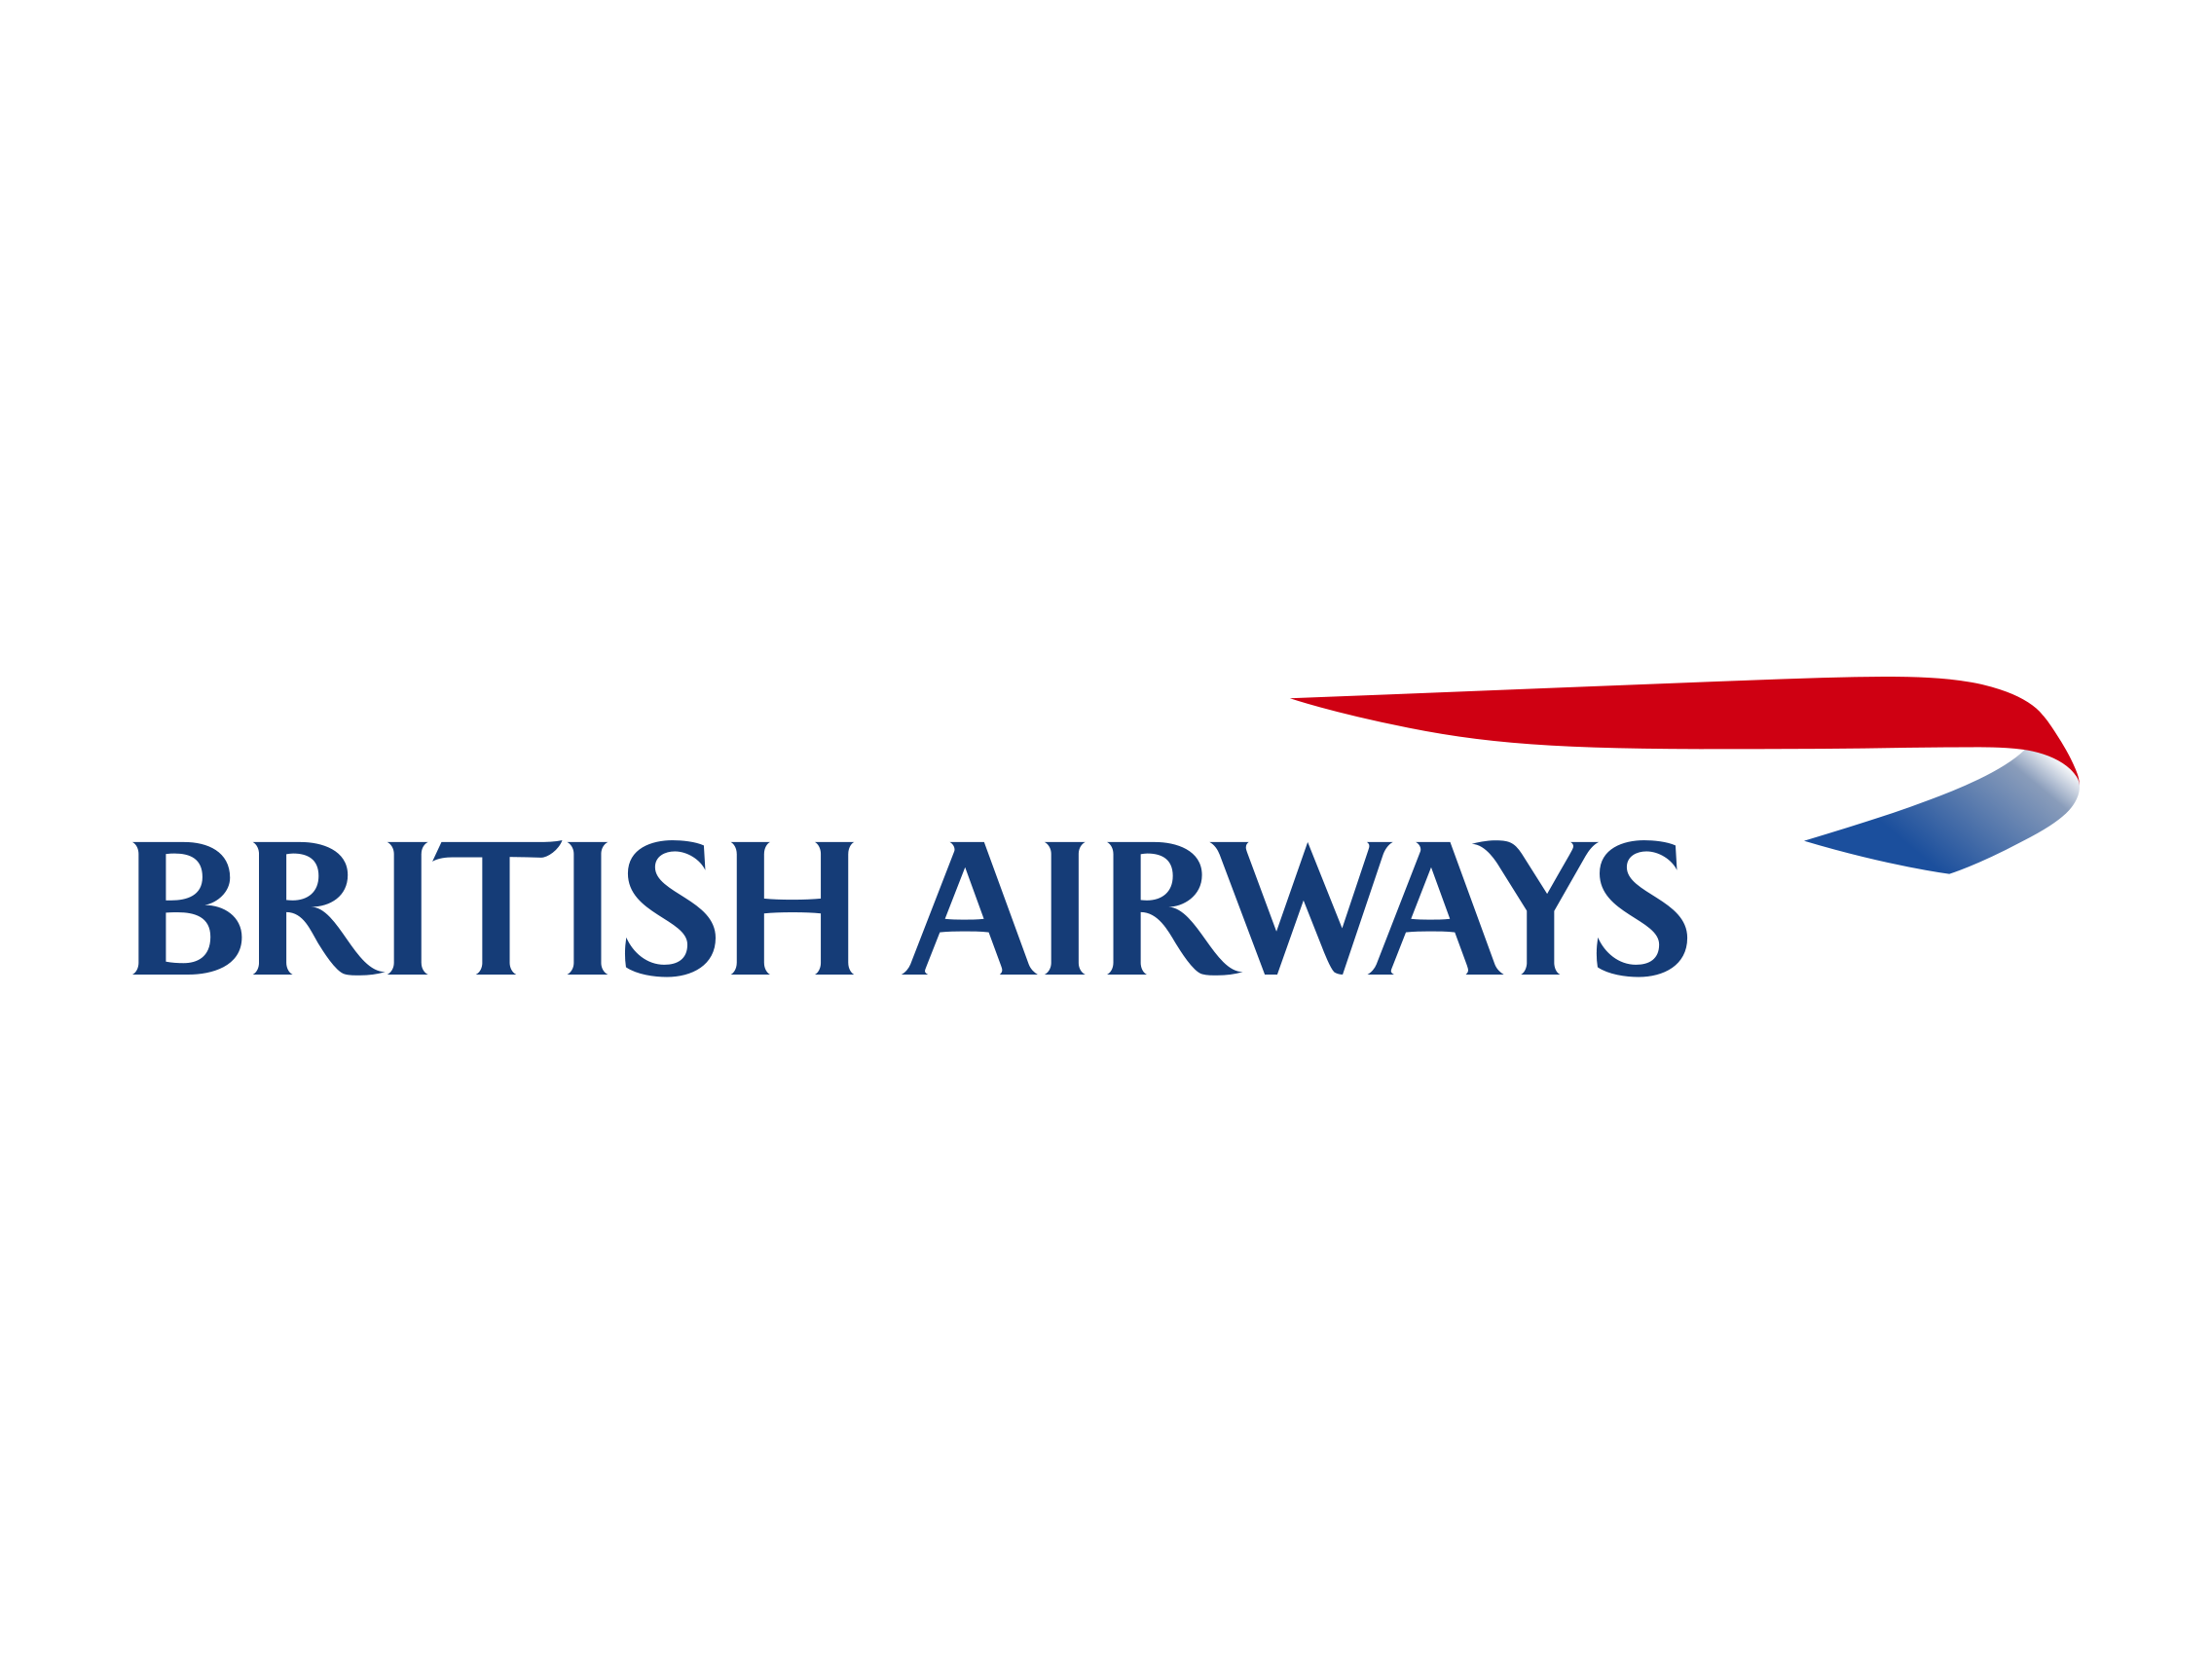 British-Airways-logo.png2272x1704 77.9 KB - British Airways Logo PNG